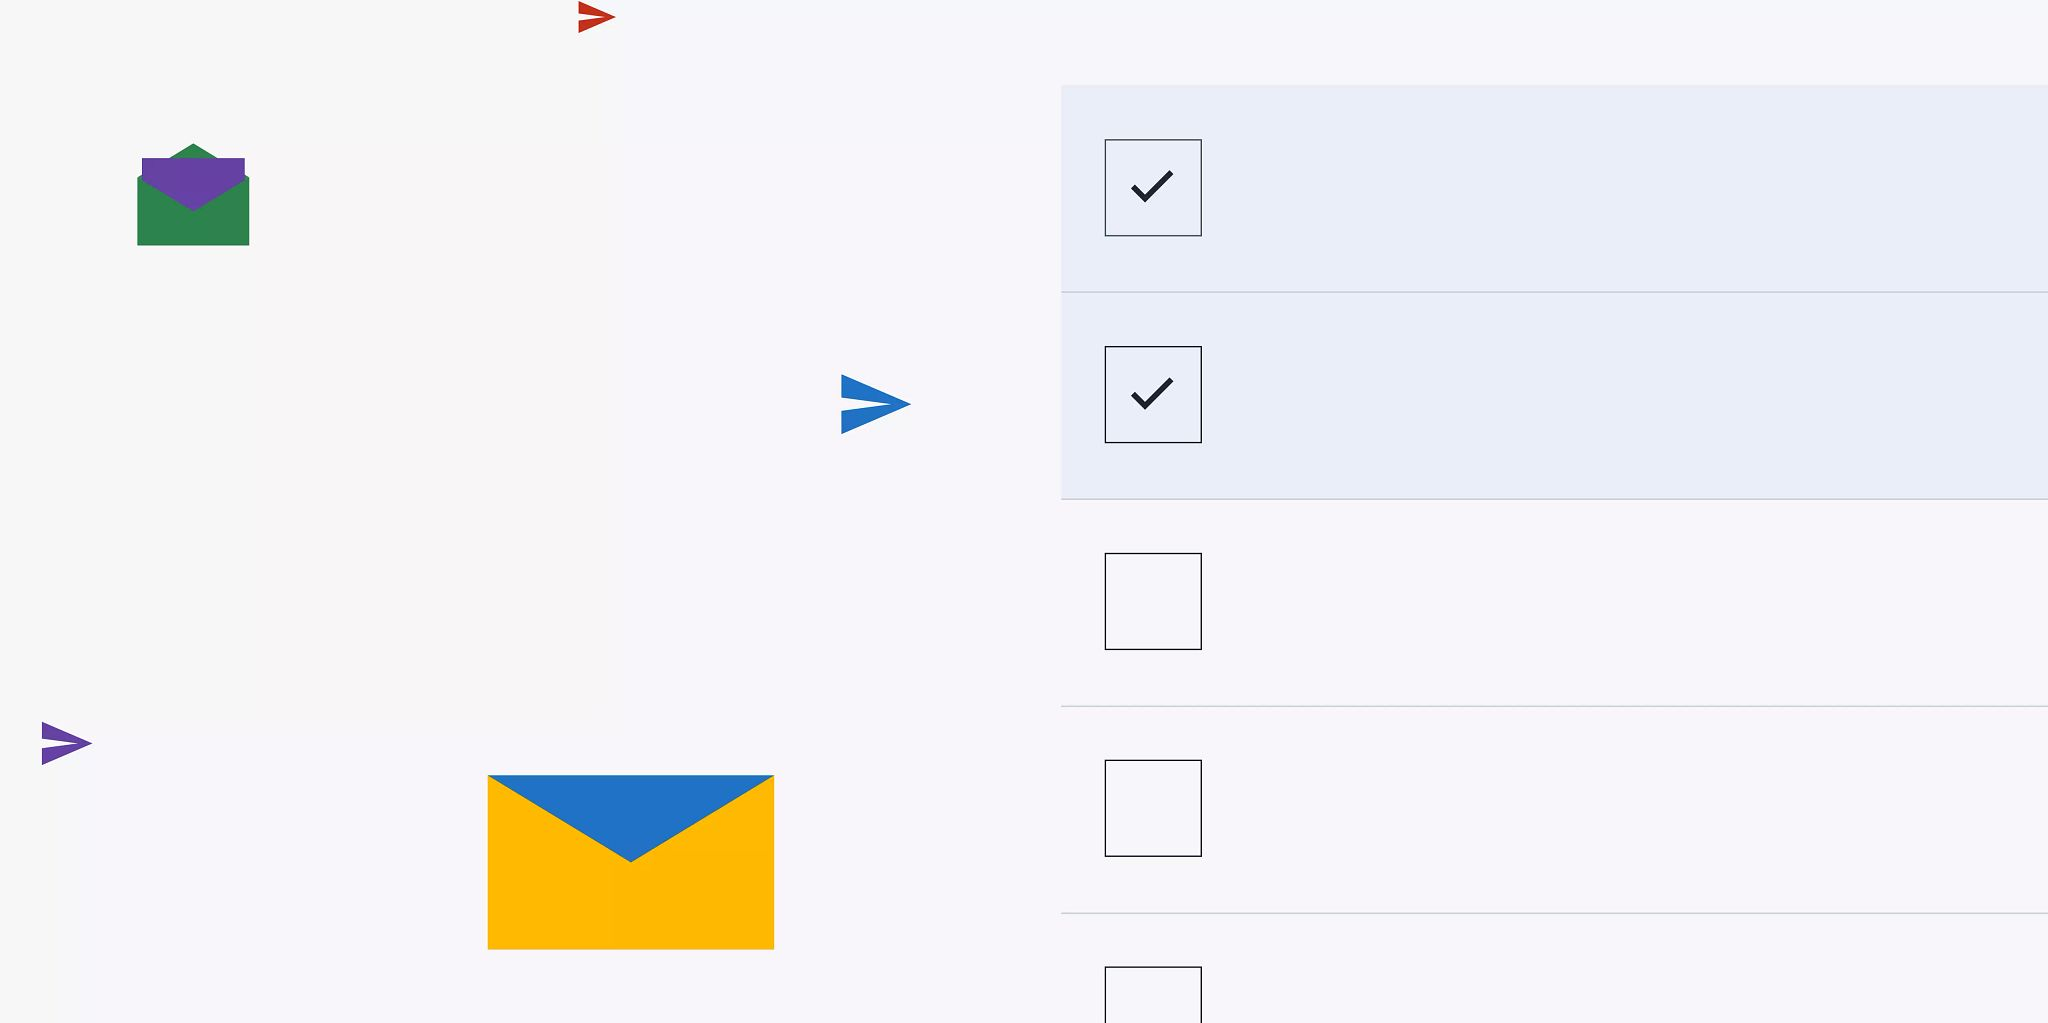 Scattered graphic illustrations on the left half of the imagerepresenting emails including envelopes and representation of paper airplanes. On the right, lines and boxes that look like a checklist with the first two items checked off.